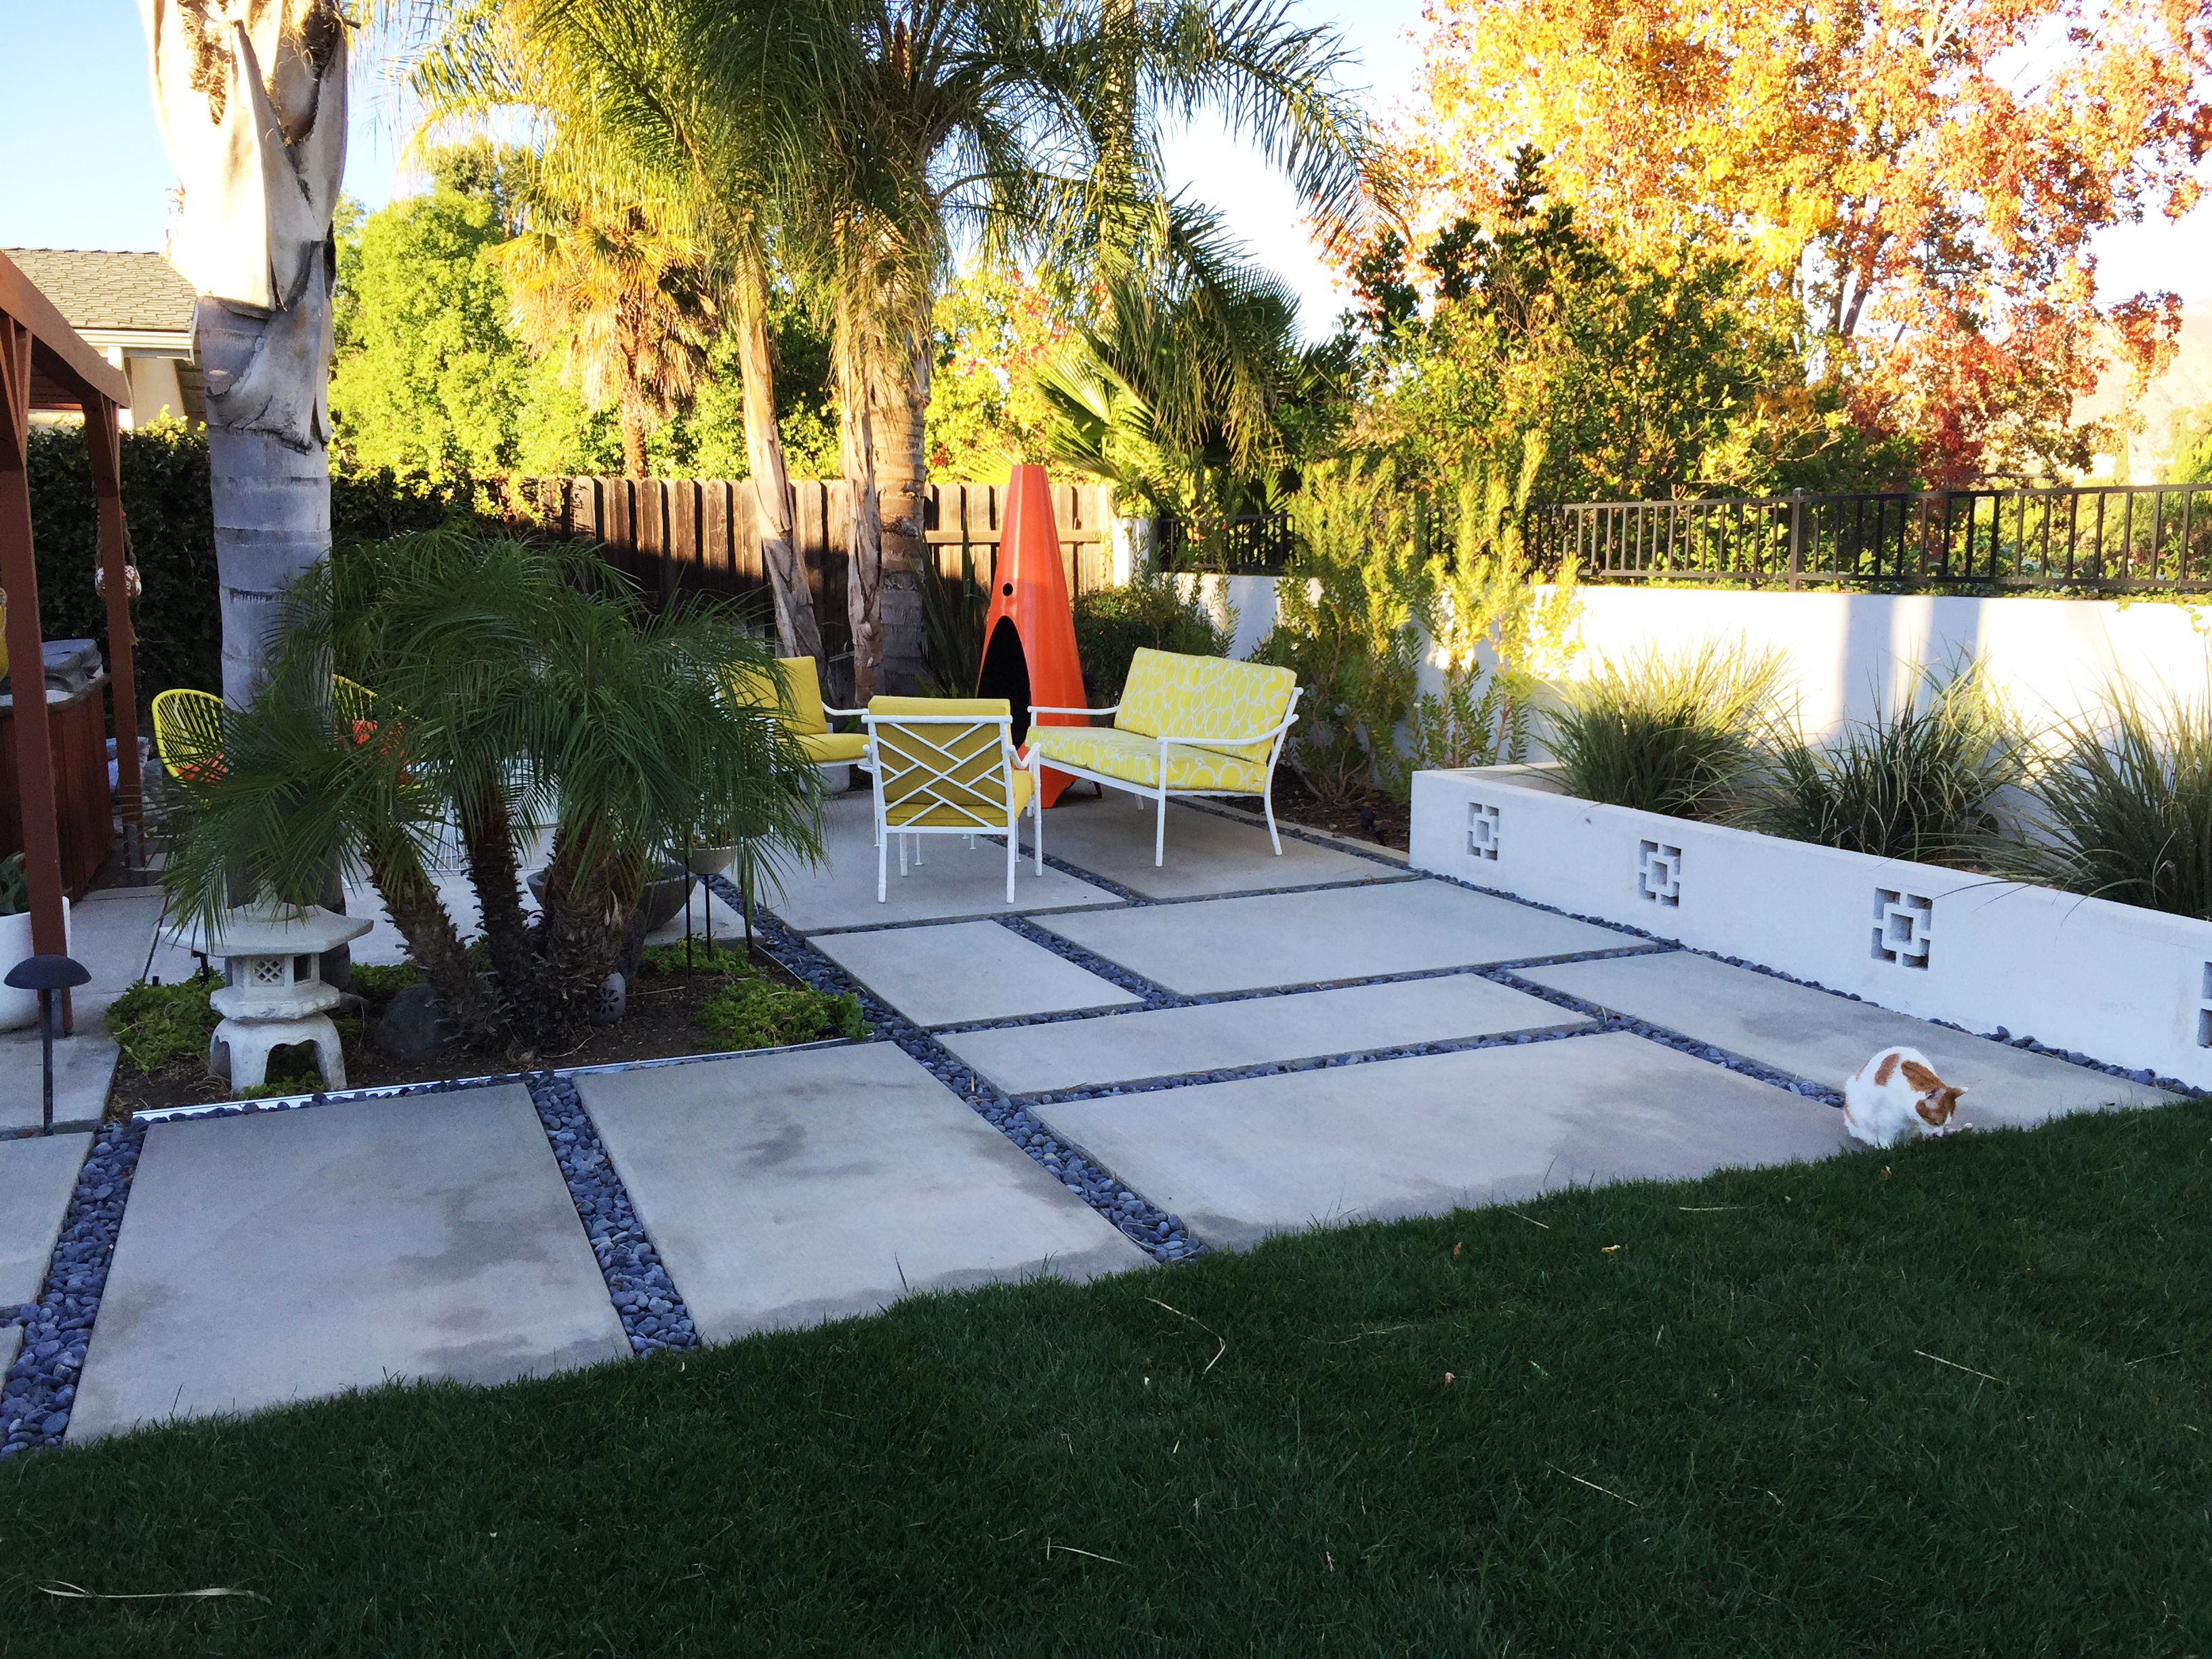 Mid Century Modern Backyard Outdoor Concrete Pavers Pads Chippendale Patio Furniture Trina Turk Modern Backyard Modern Landscaping Mid Century Modern Backyard Modern backyard with pavers